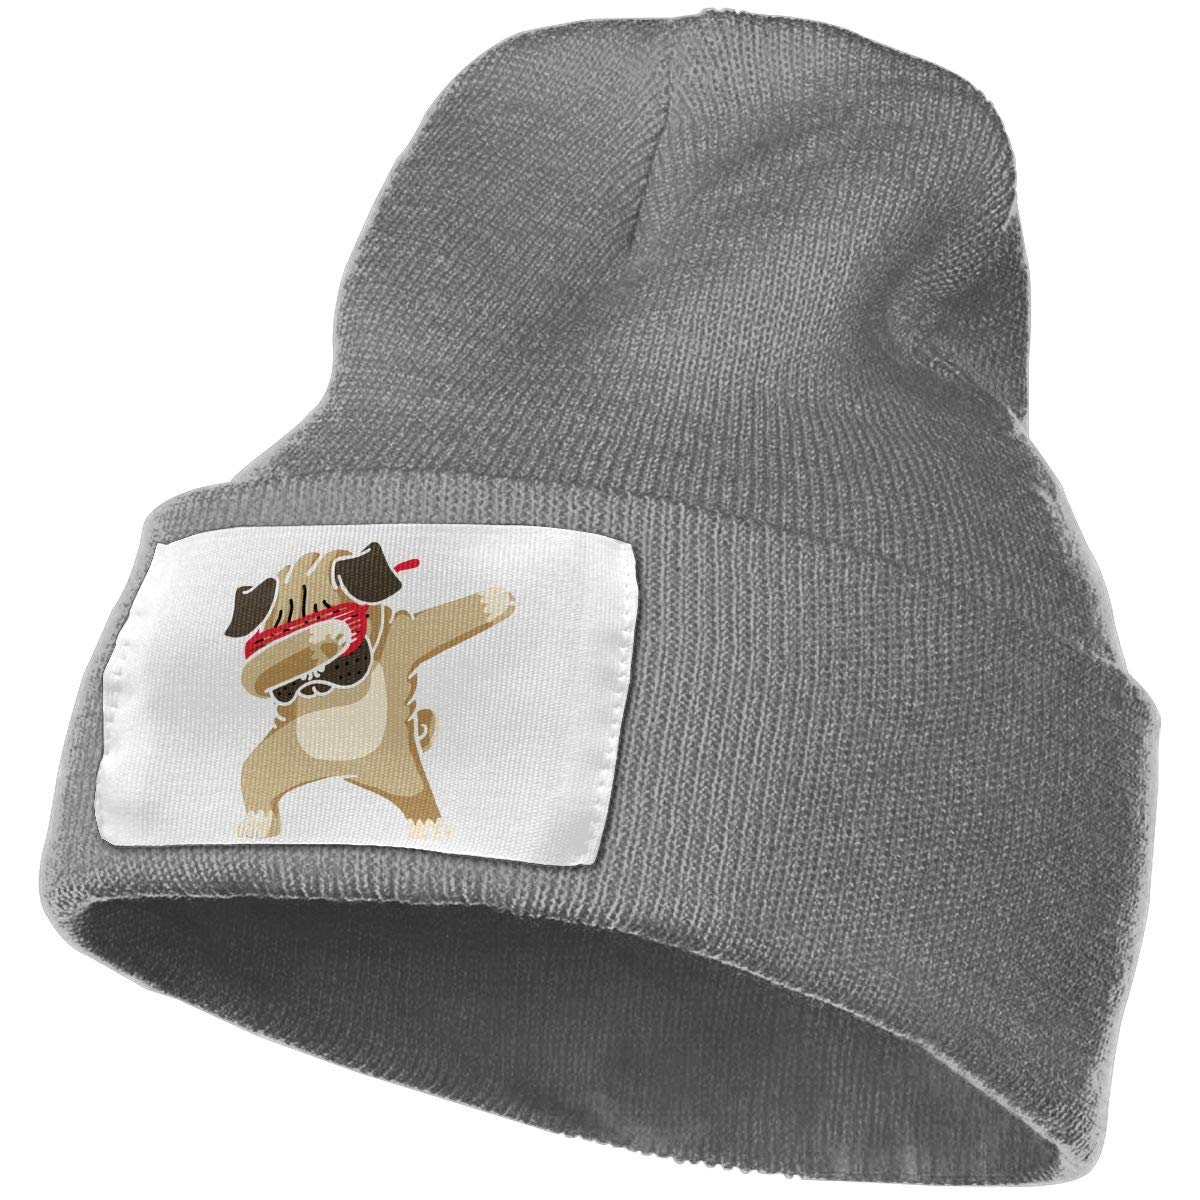 TAOMAP89 Dabbing Pug Hip Hop Women and Men Skull Caps Winter Warm Stretchy Knit Beanie Hats